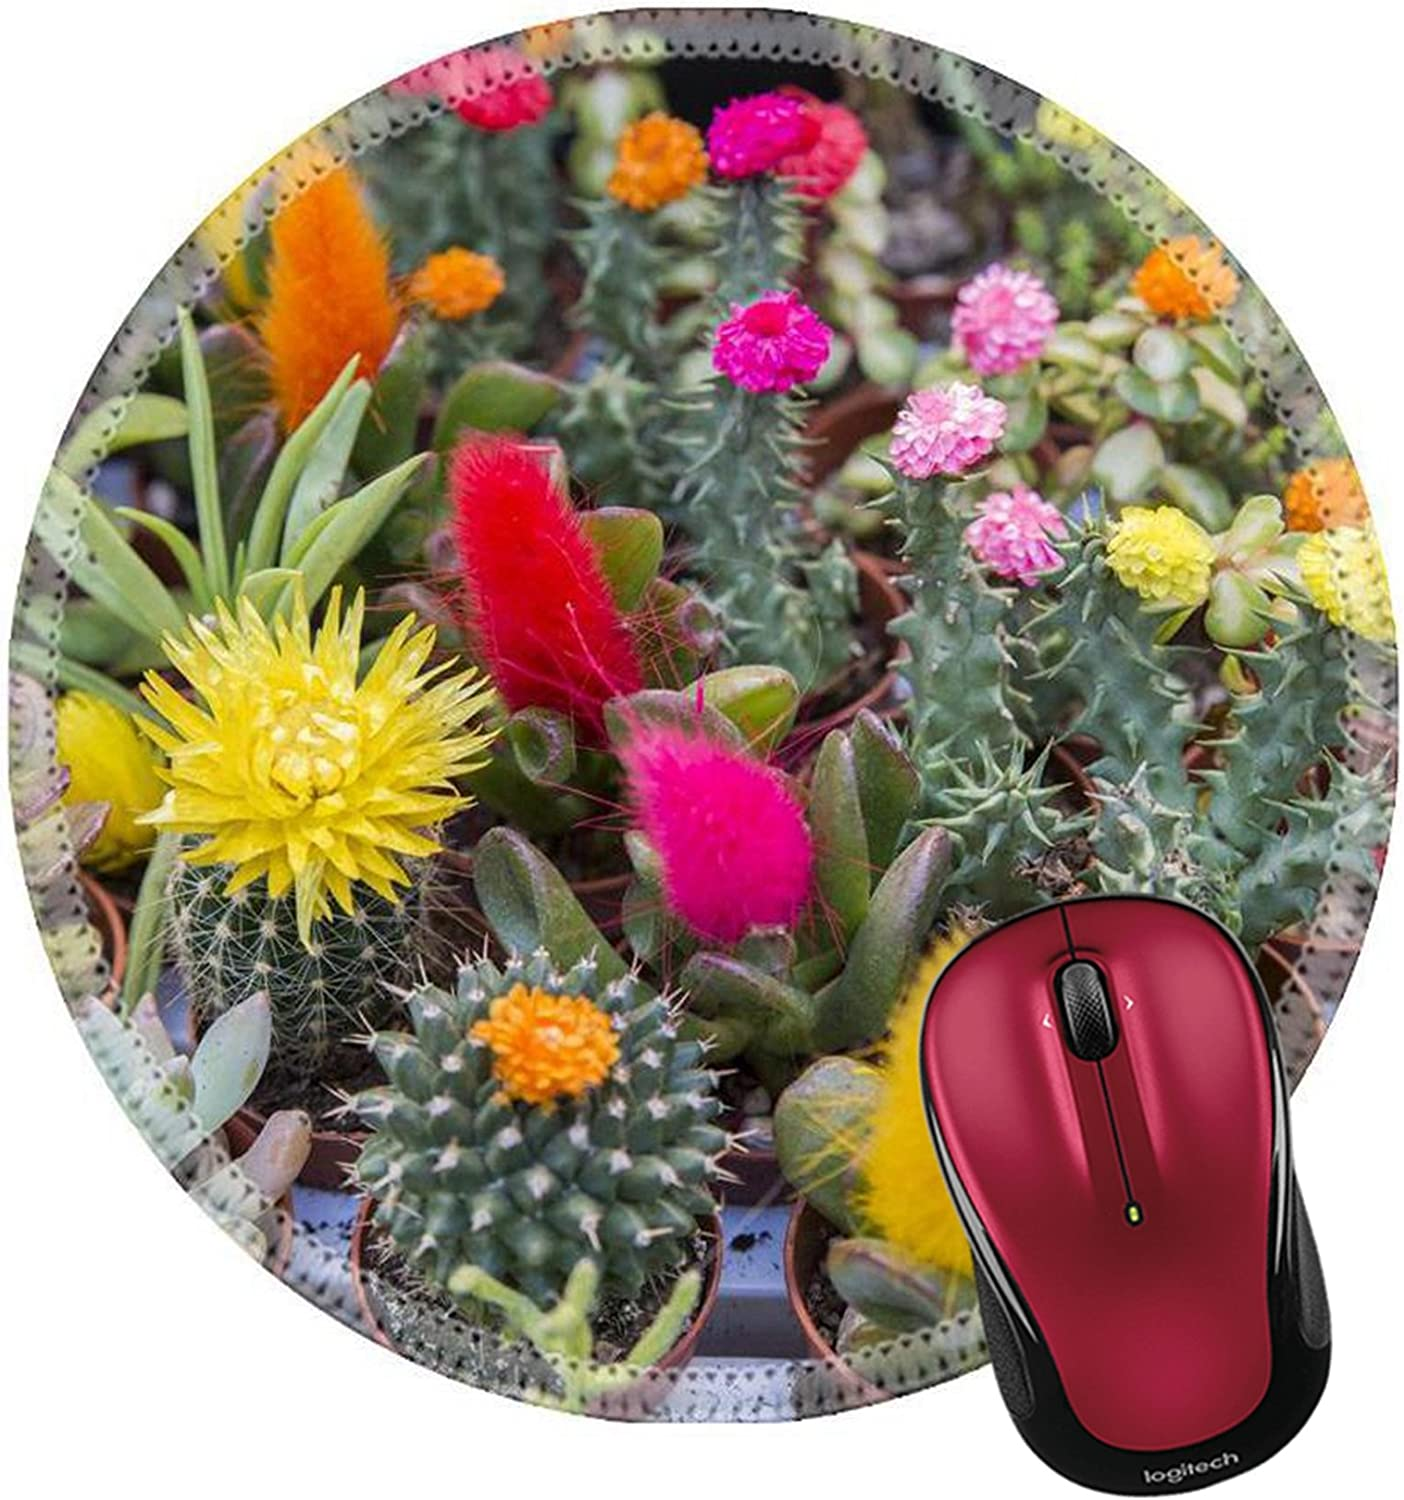 Liili Round Mouse Pad Natural Rubber Mousepad Image ID 32372175 Small Flowered Cactus of Many Kinds